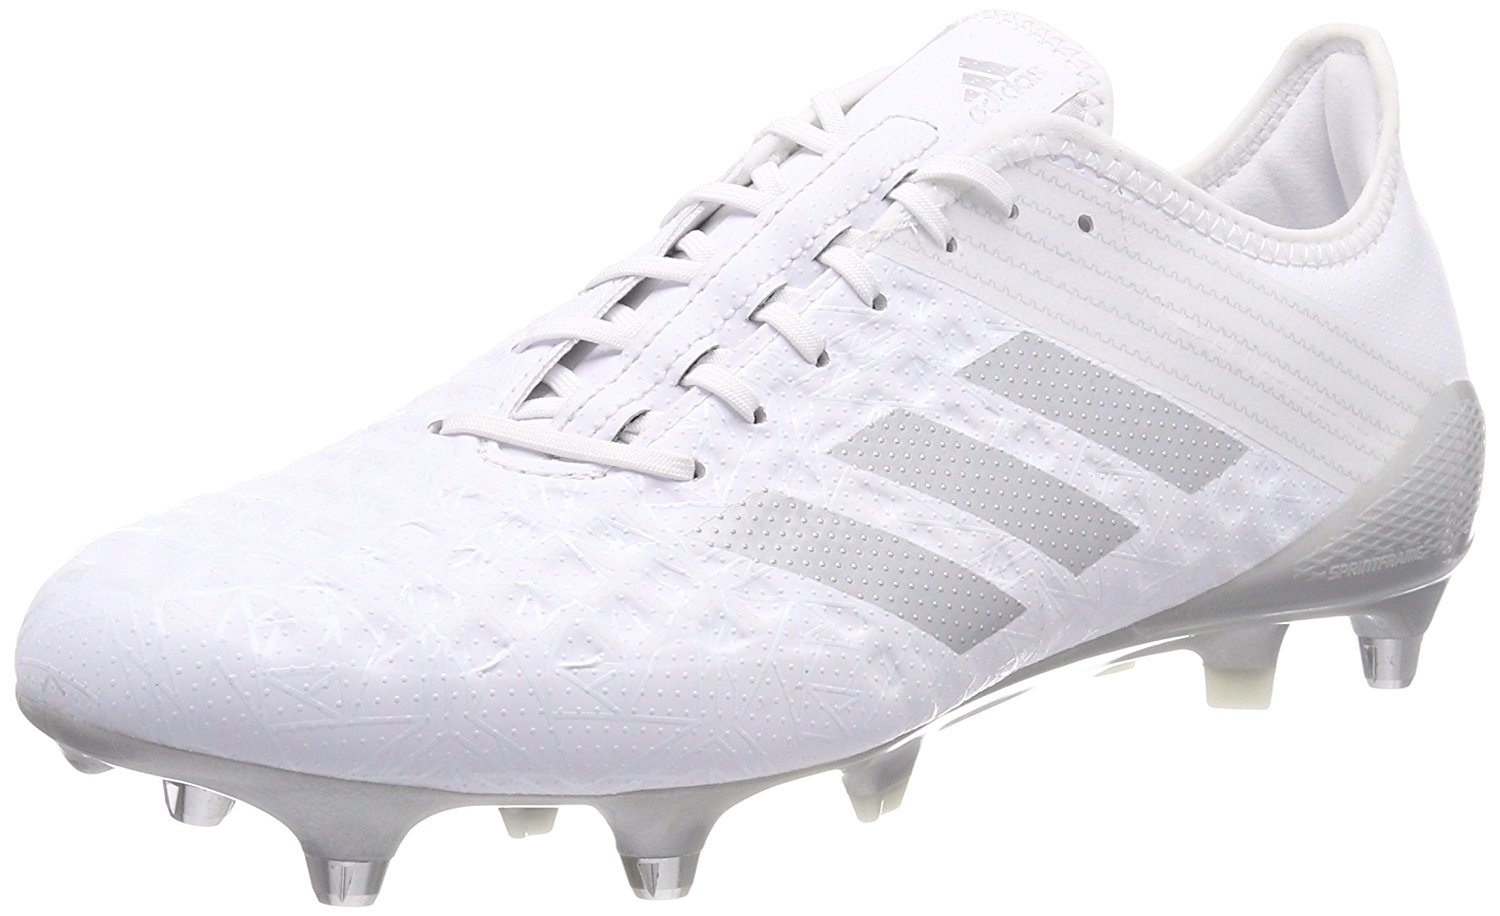 Get Quotations · Predator Malice Control SG Rugby Boots - FTWHITE 46552b13ccb4a